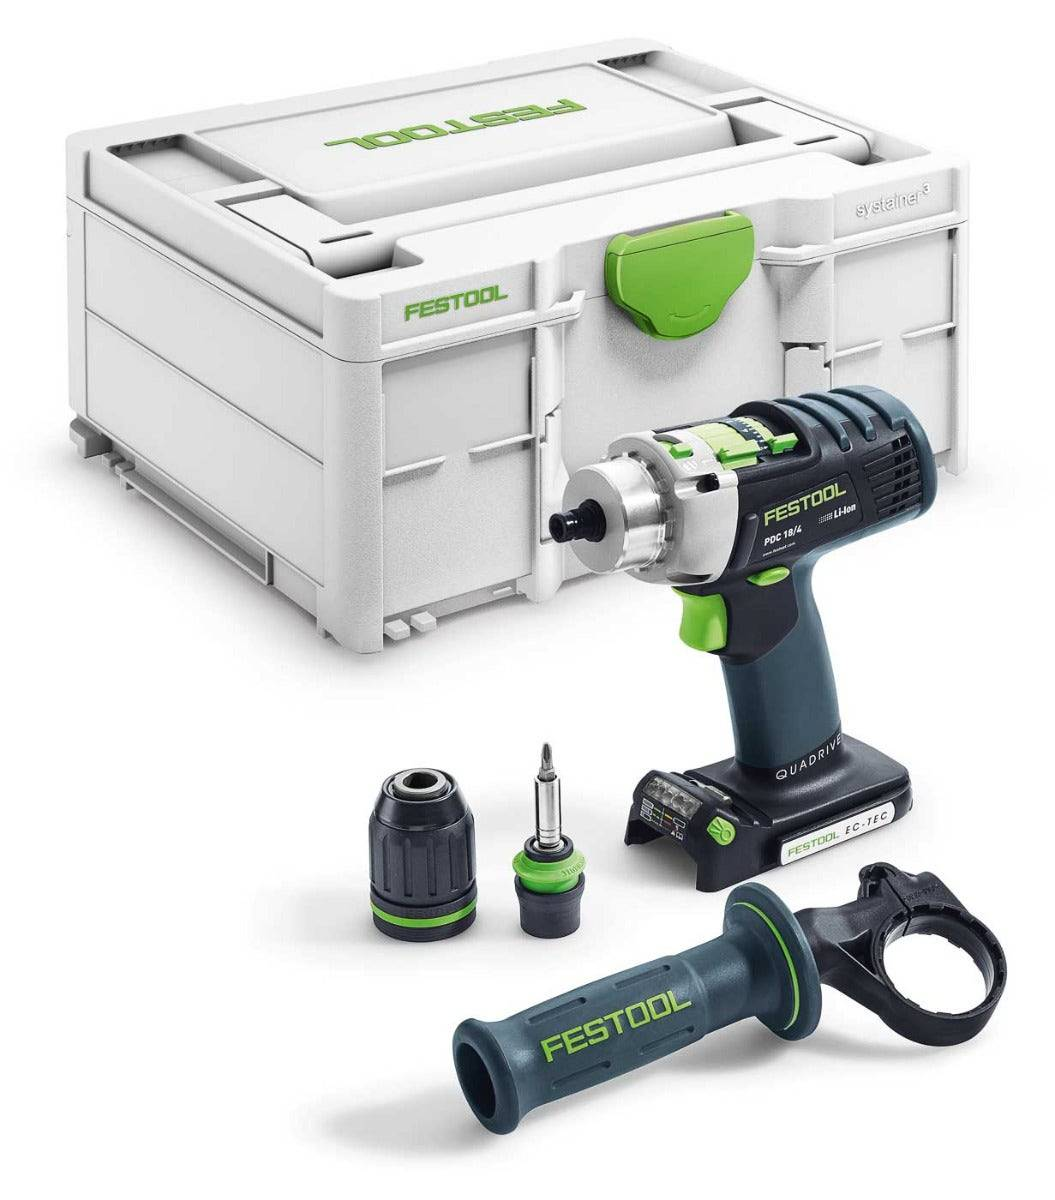 Festool Perceuse-visseuse à percussion sans fil Quadrive PDC 18/4 Basic (sans batterie ni chargeur) + systainer